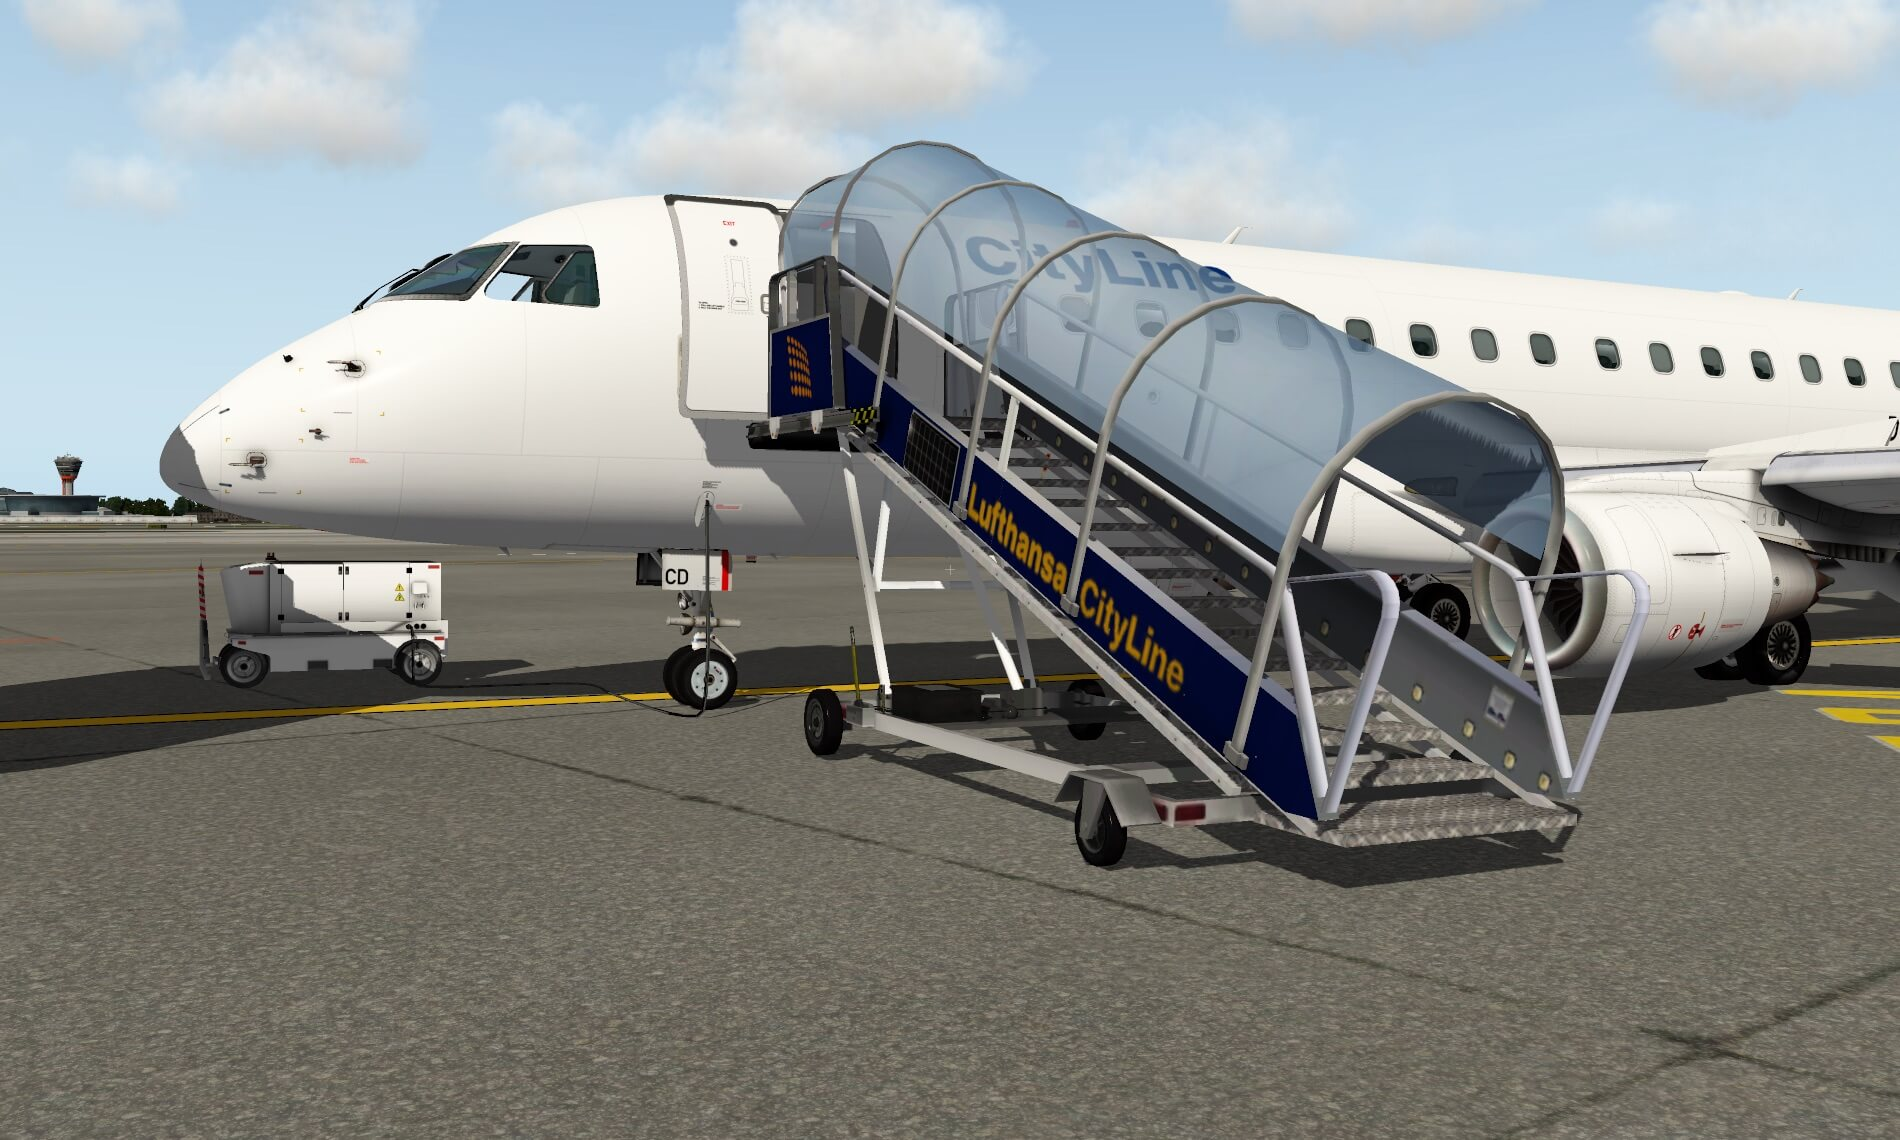 Review Ssg E Jet Evolution 170 Series X Plained The Source Wiring Diagram Symbols Embraer Overall Im Satisfied With Modeled 3d Textures Are Ok But Used Liveries Look Is Not Really One Of Compared To Clean